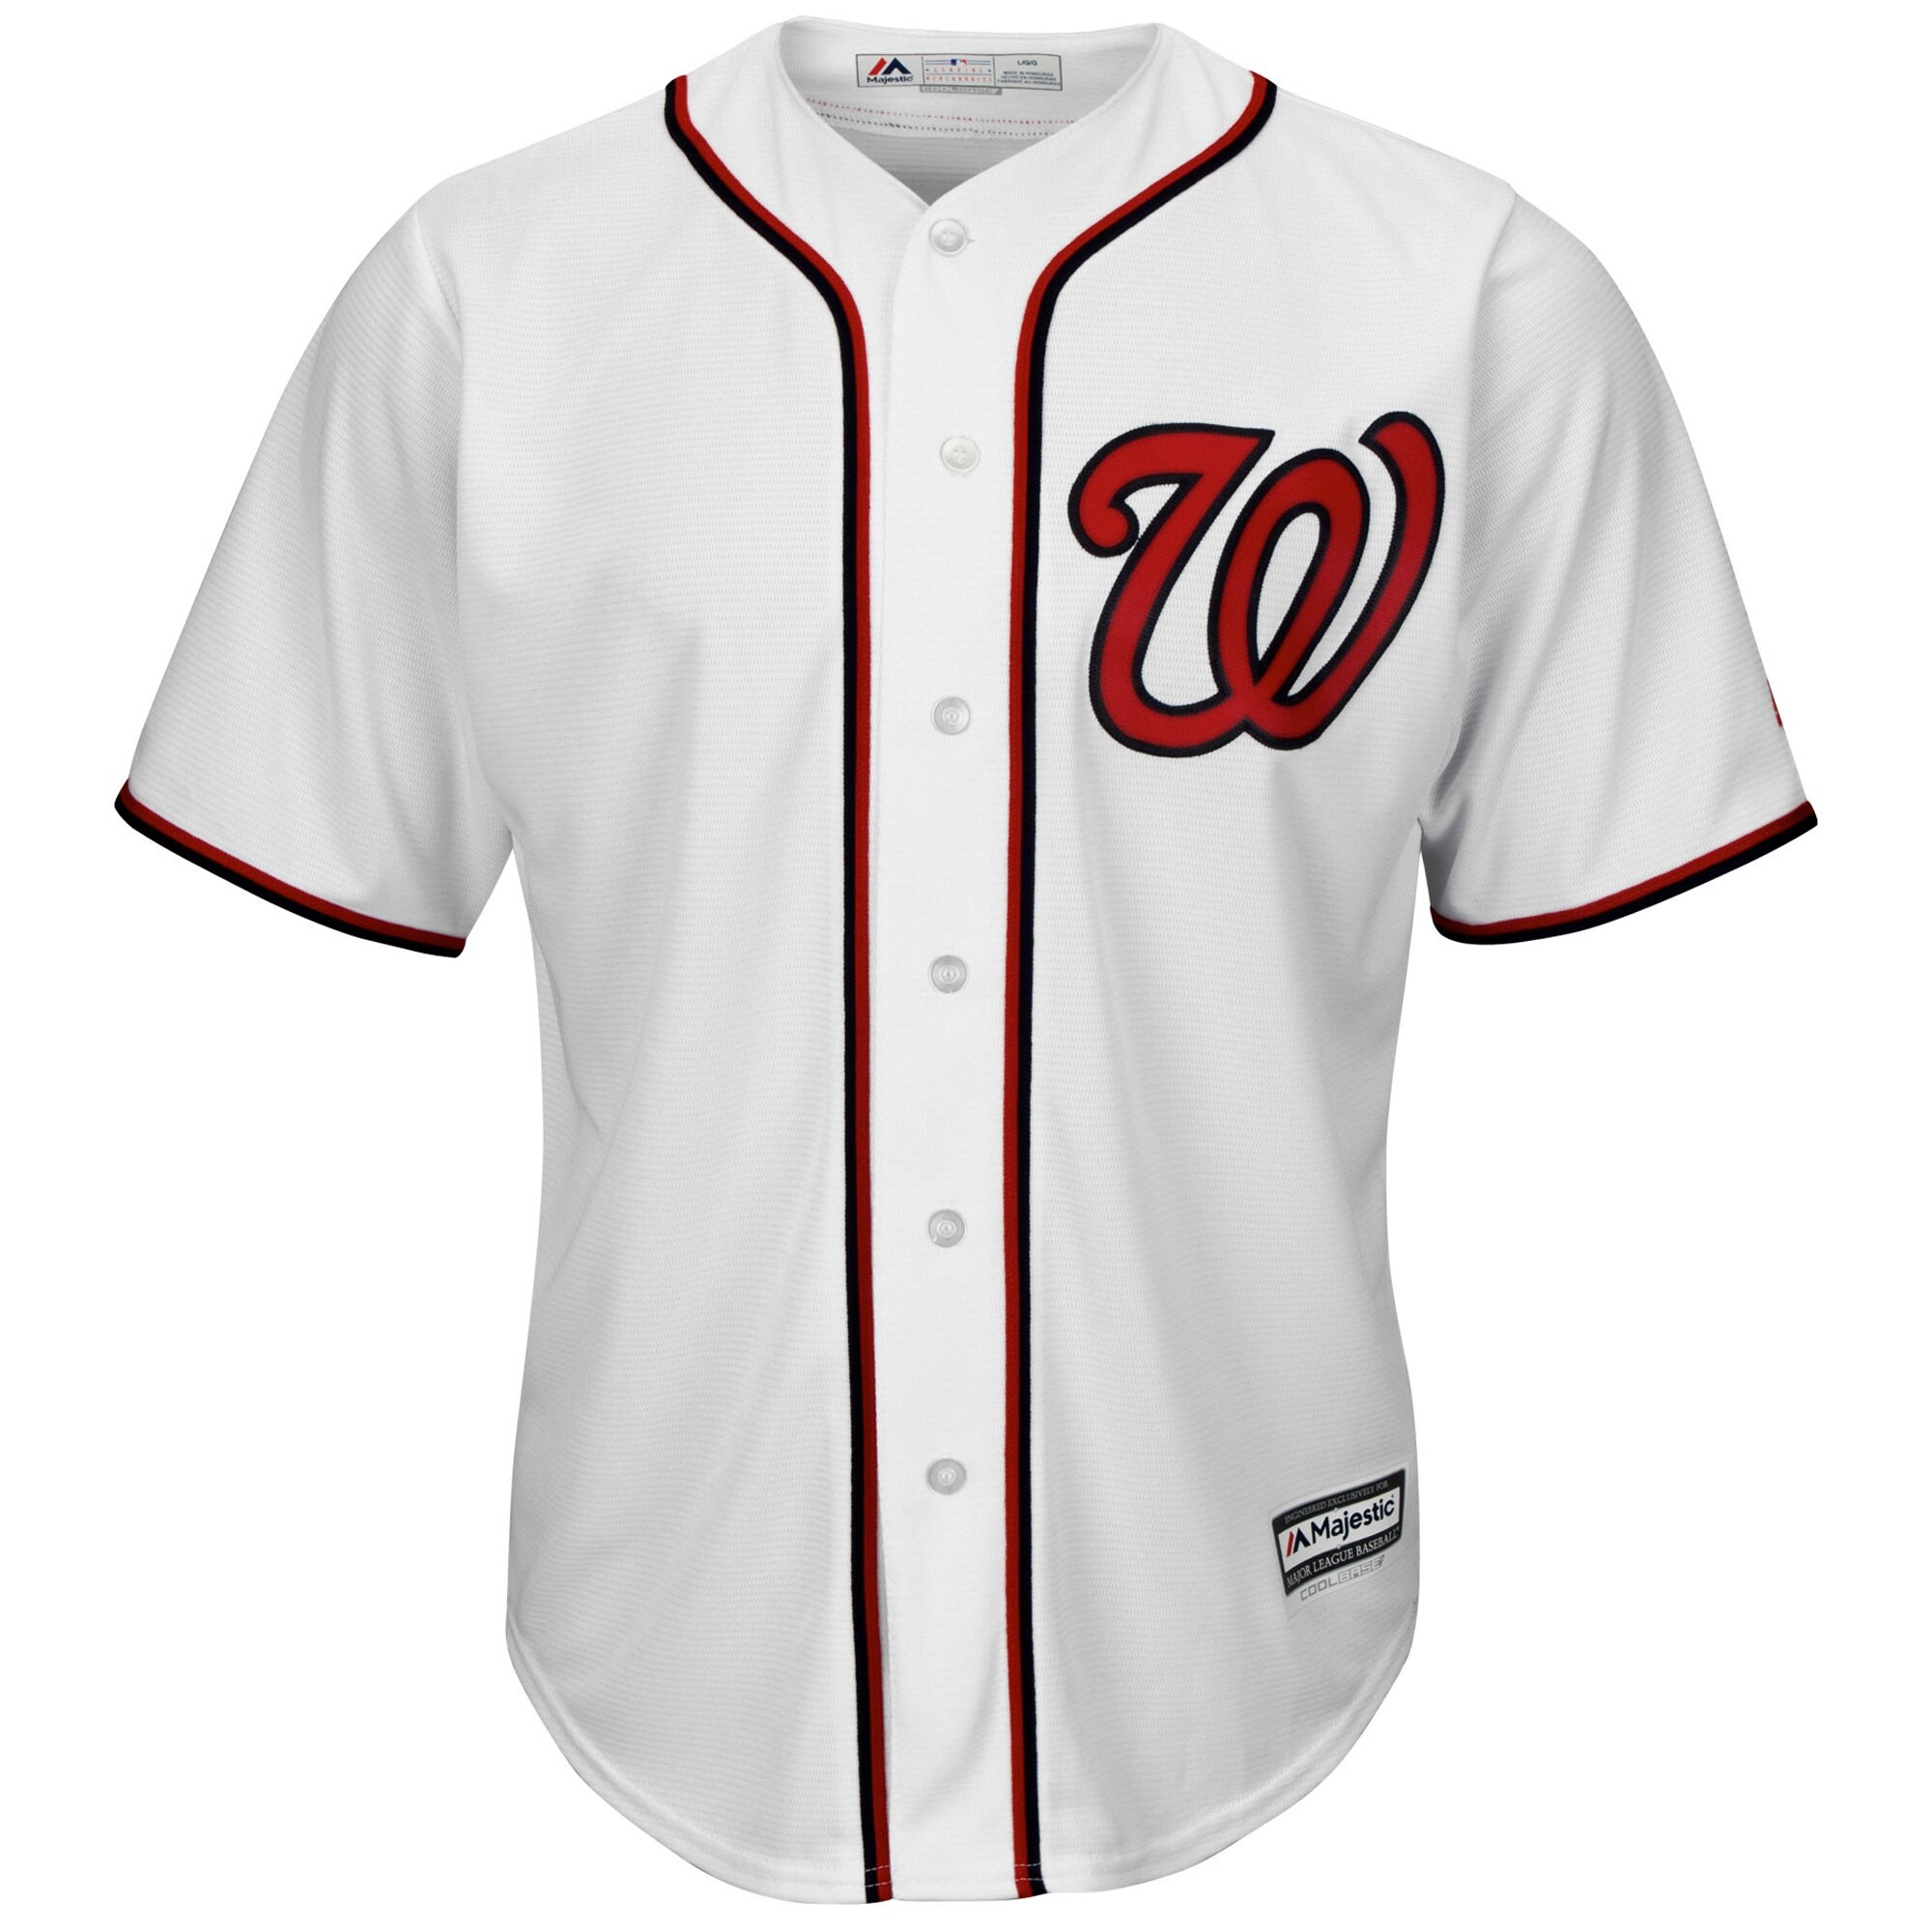 Washington Nationals Majestic Official Cool Base Jersey - White